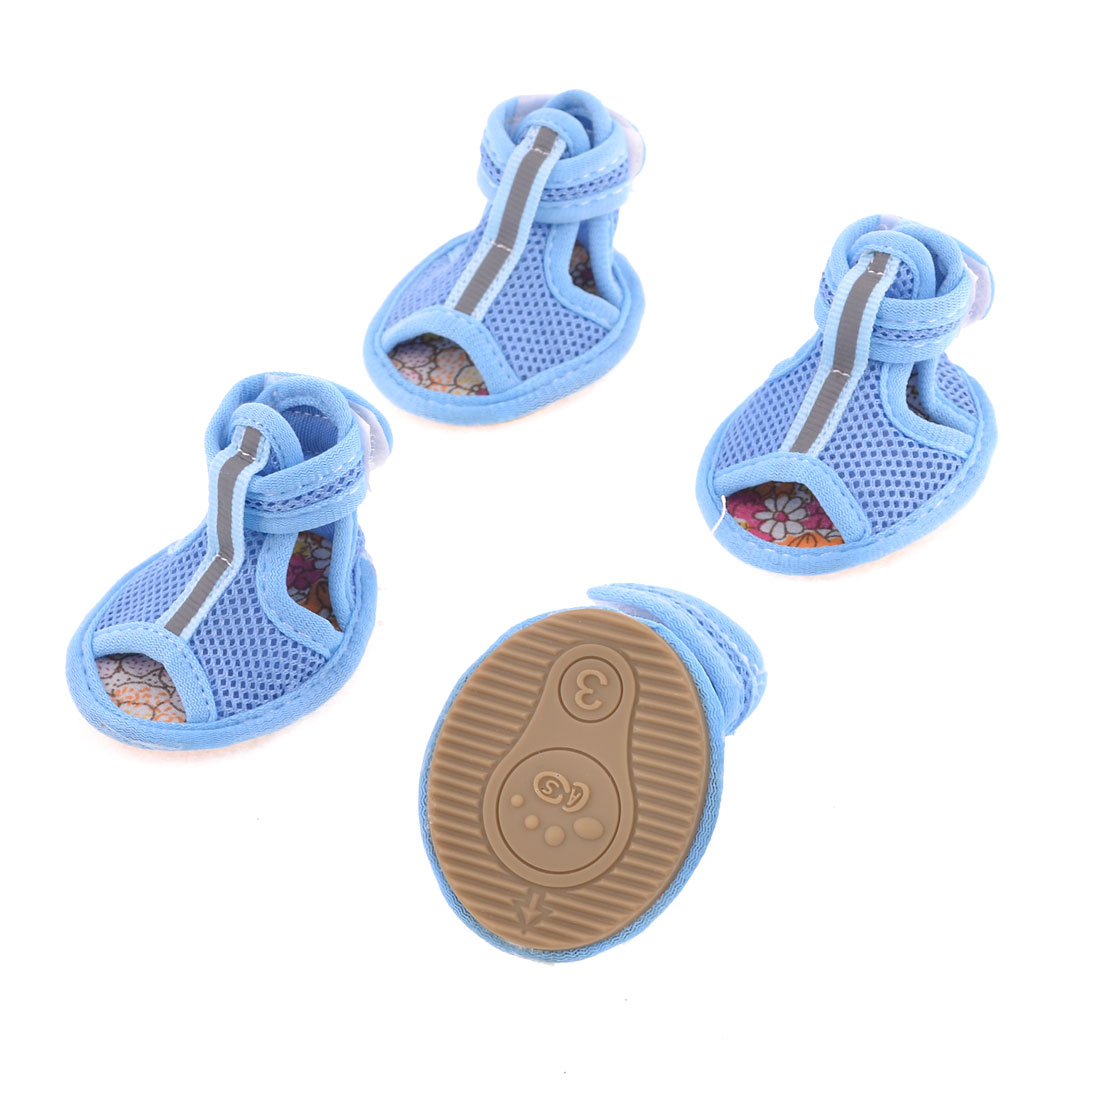 2 Pairs Rubber Sole Blue Mesh Sandals Yorkie Chihuaha Dog Shoes Size S